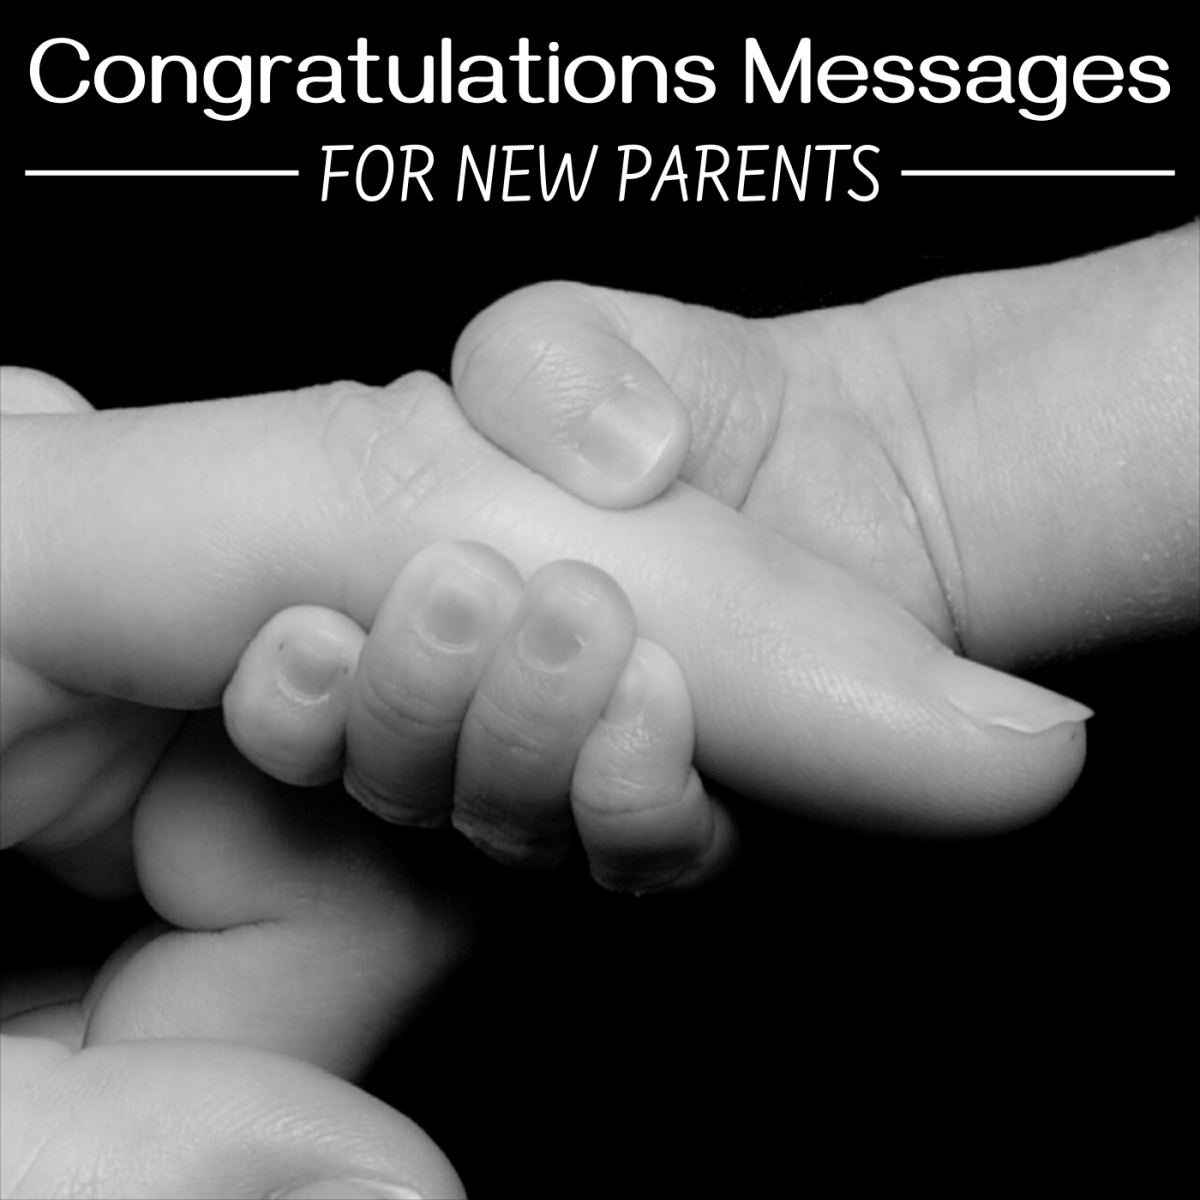 Happy Parenting Messages and Newborn Baby Wishes for Friends